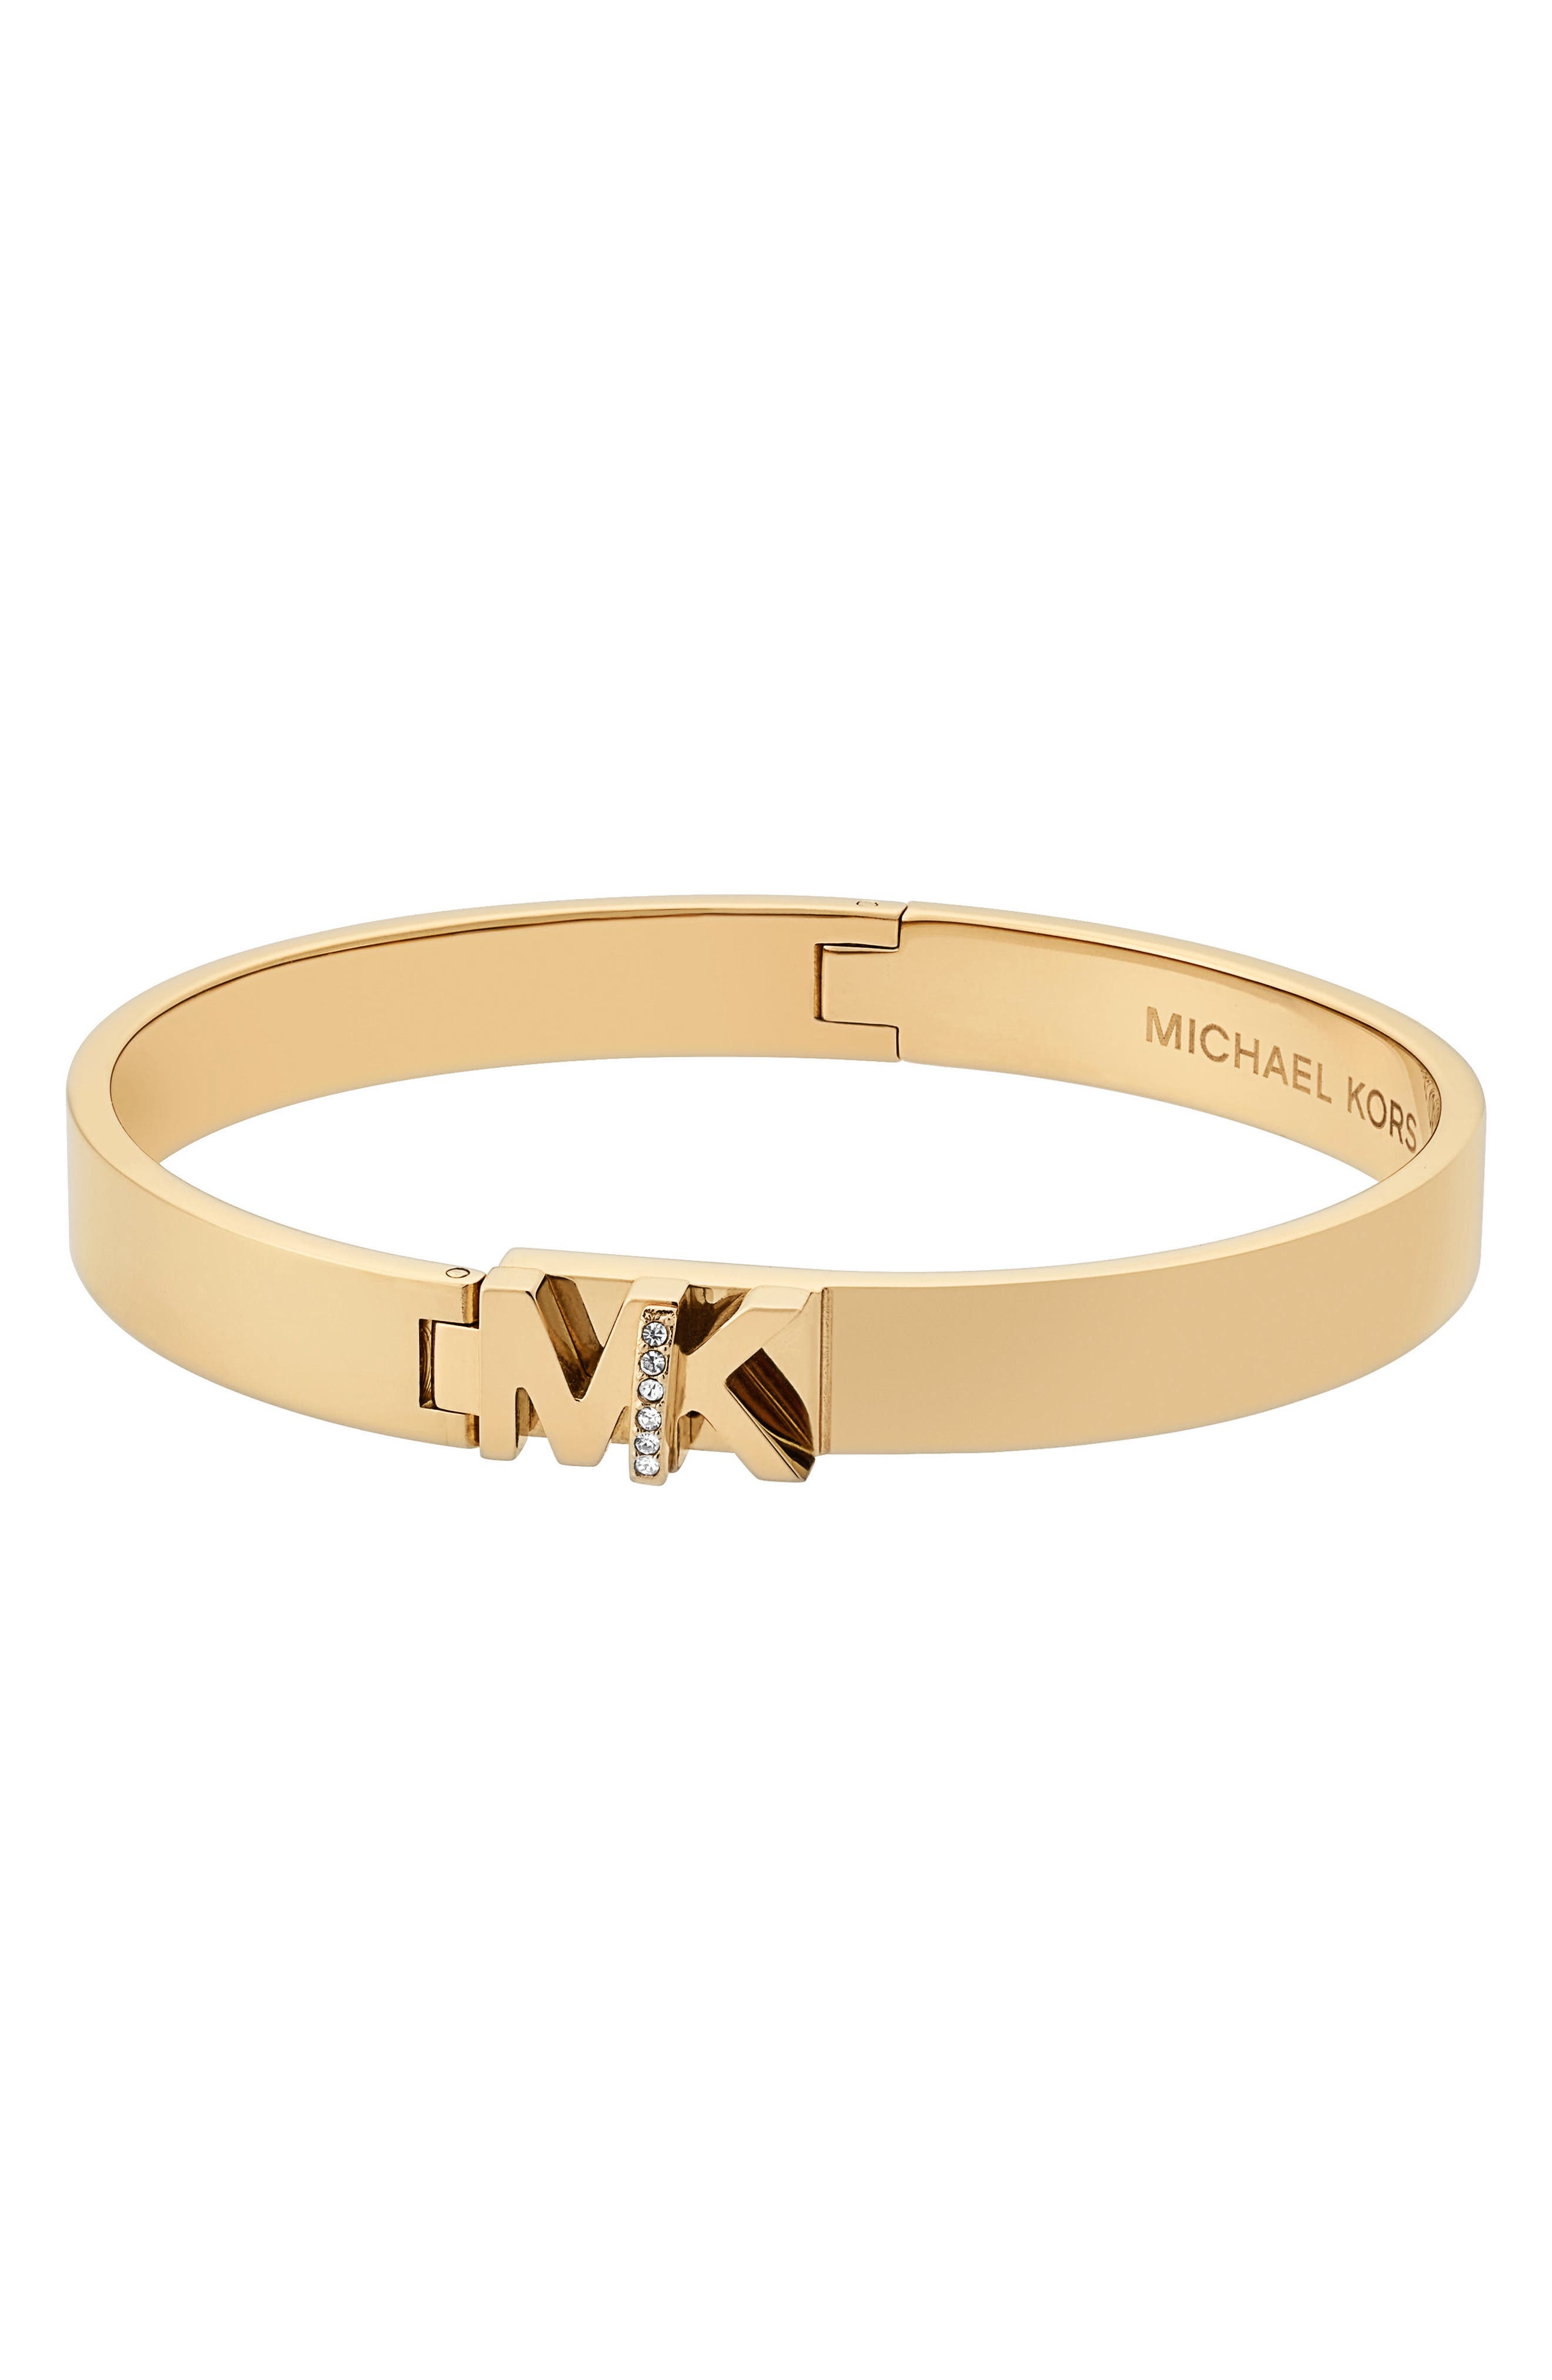 Turnlock Bangle,                             Main thumbnail 1, color,                             Gold